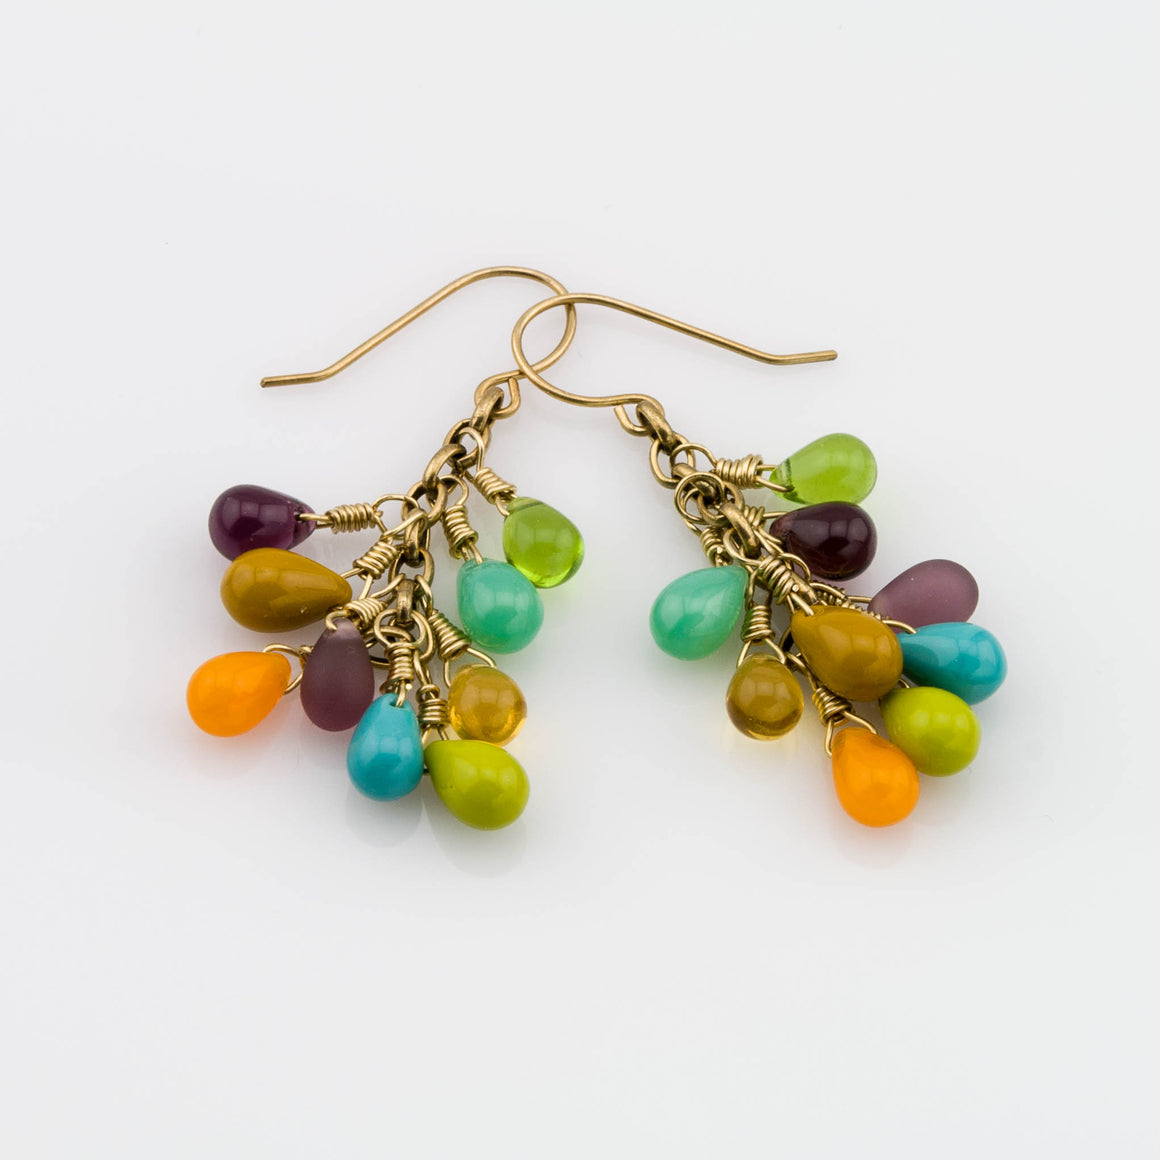 These earring are a great match with this bracelet.   https://daisy-beadworks.myshopify.com/admin/products/7864172360